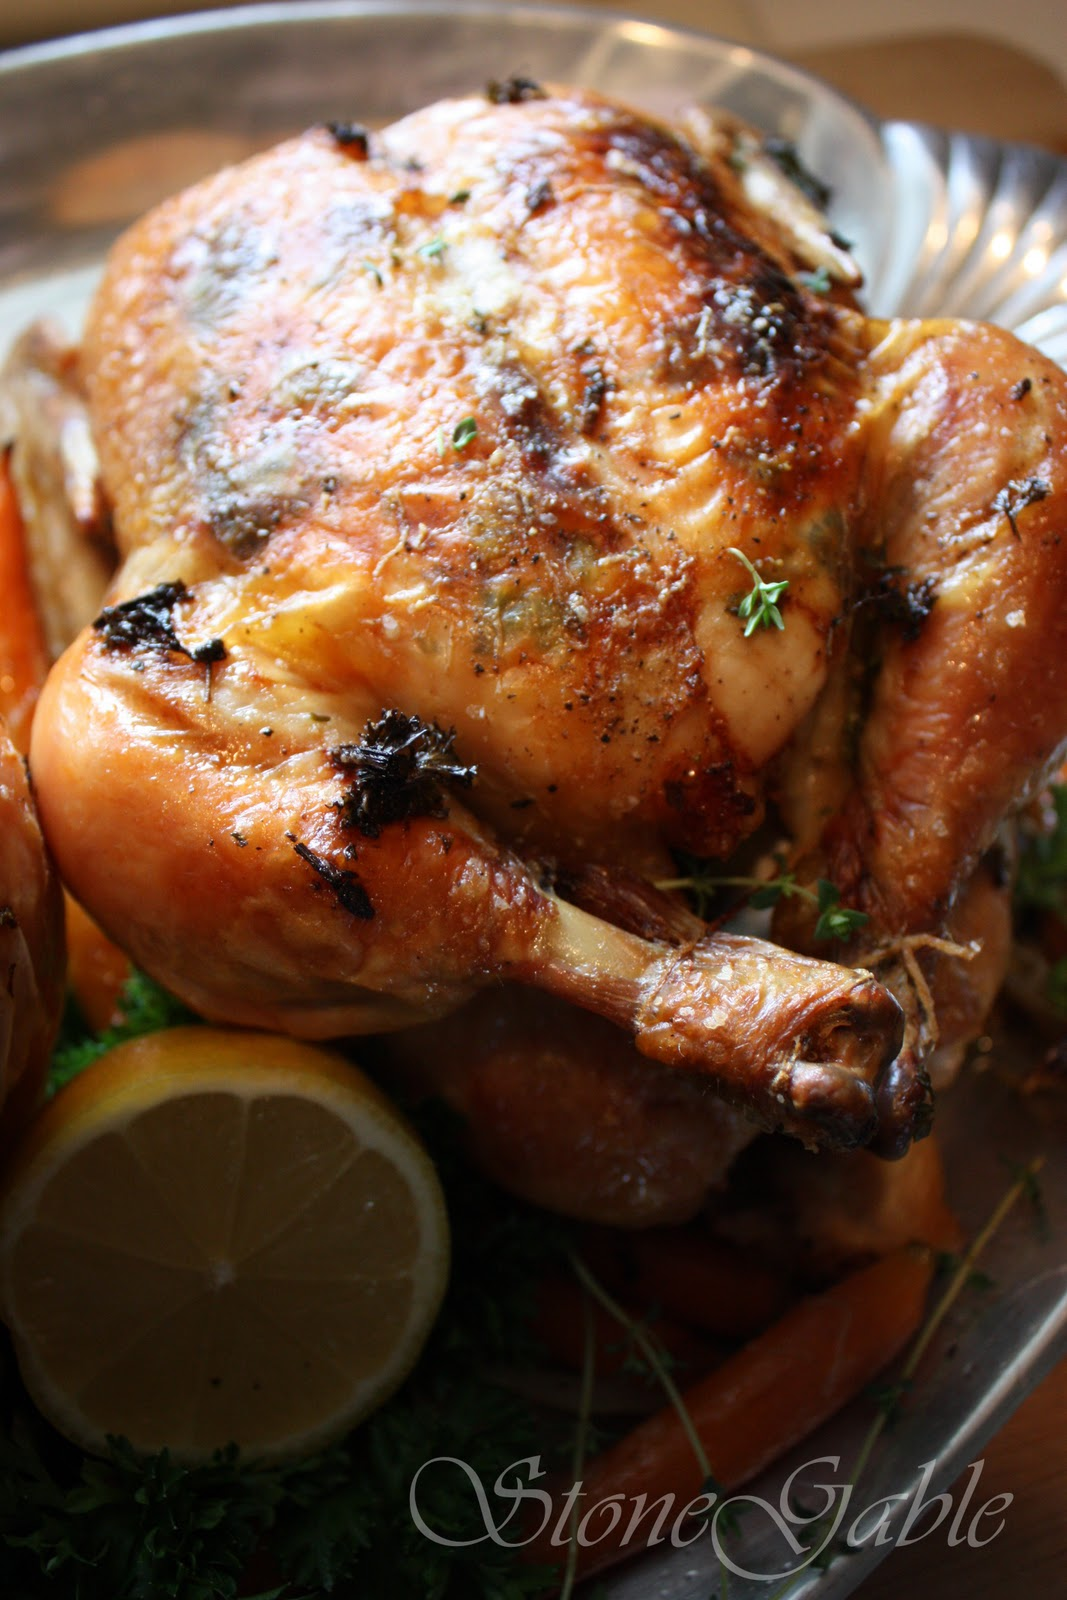 StoneGable: Ina Garten's Perfect Roast Chicken With A StoneGable Twist